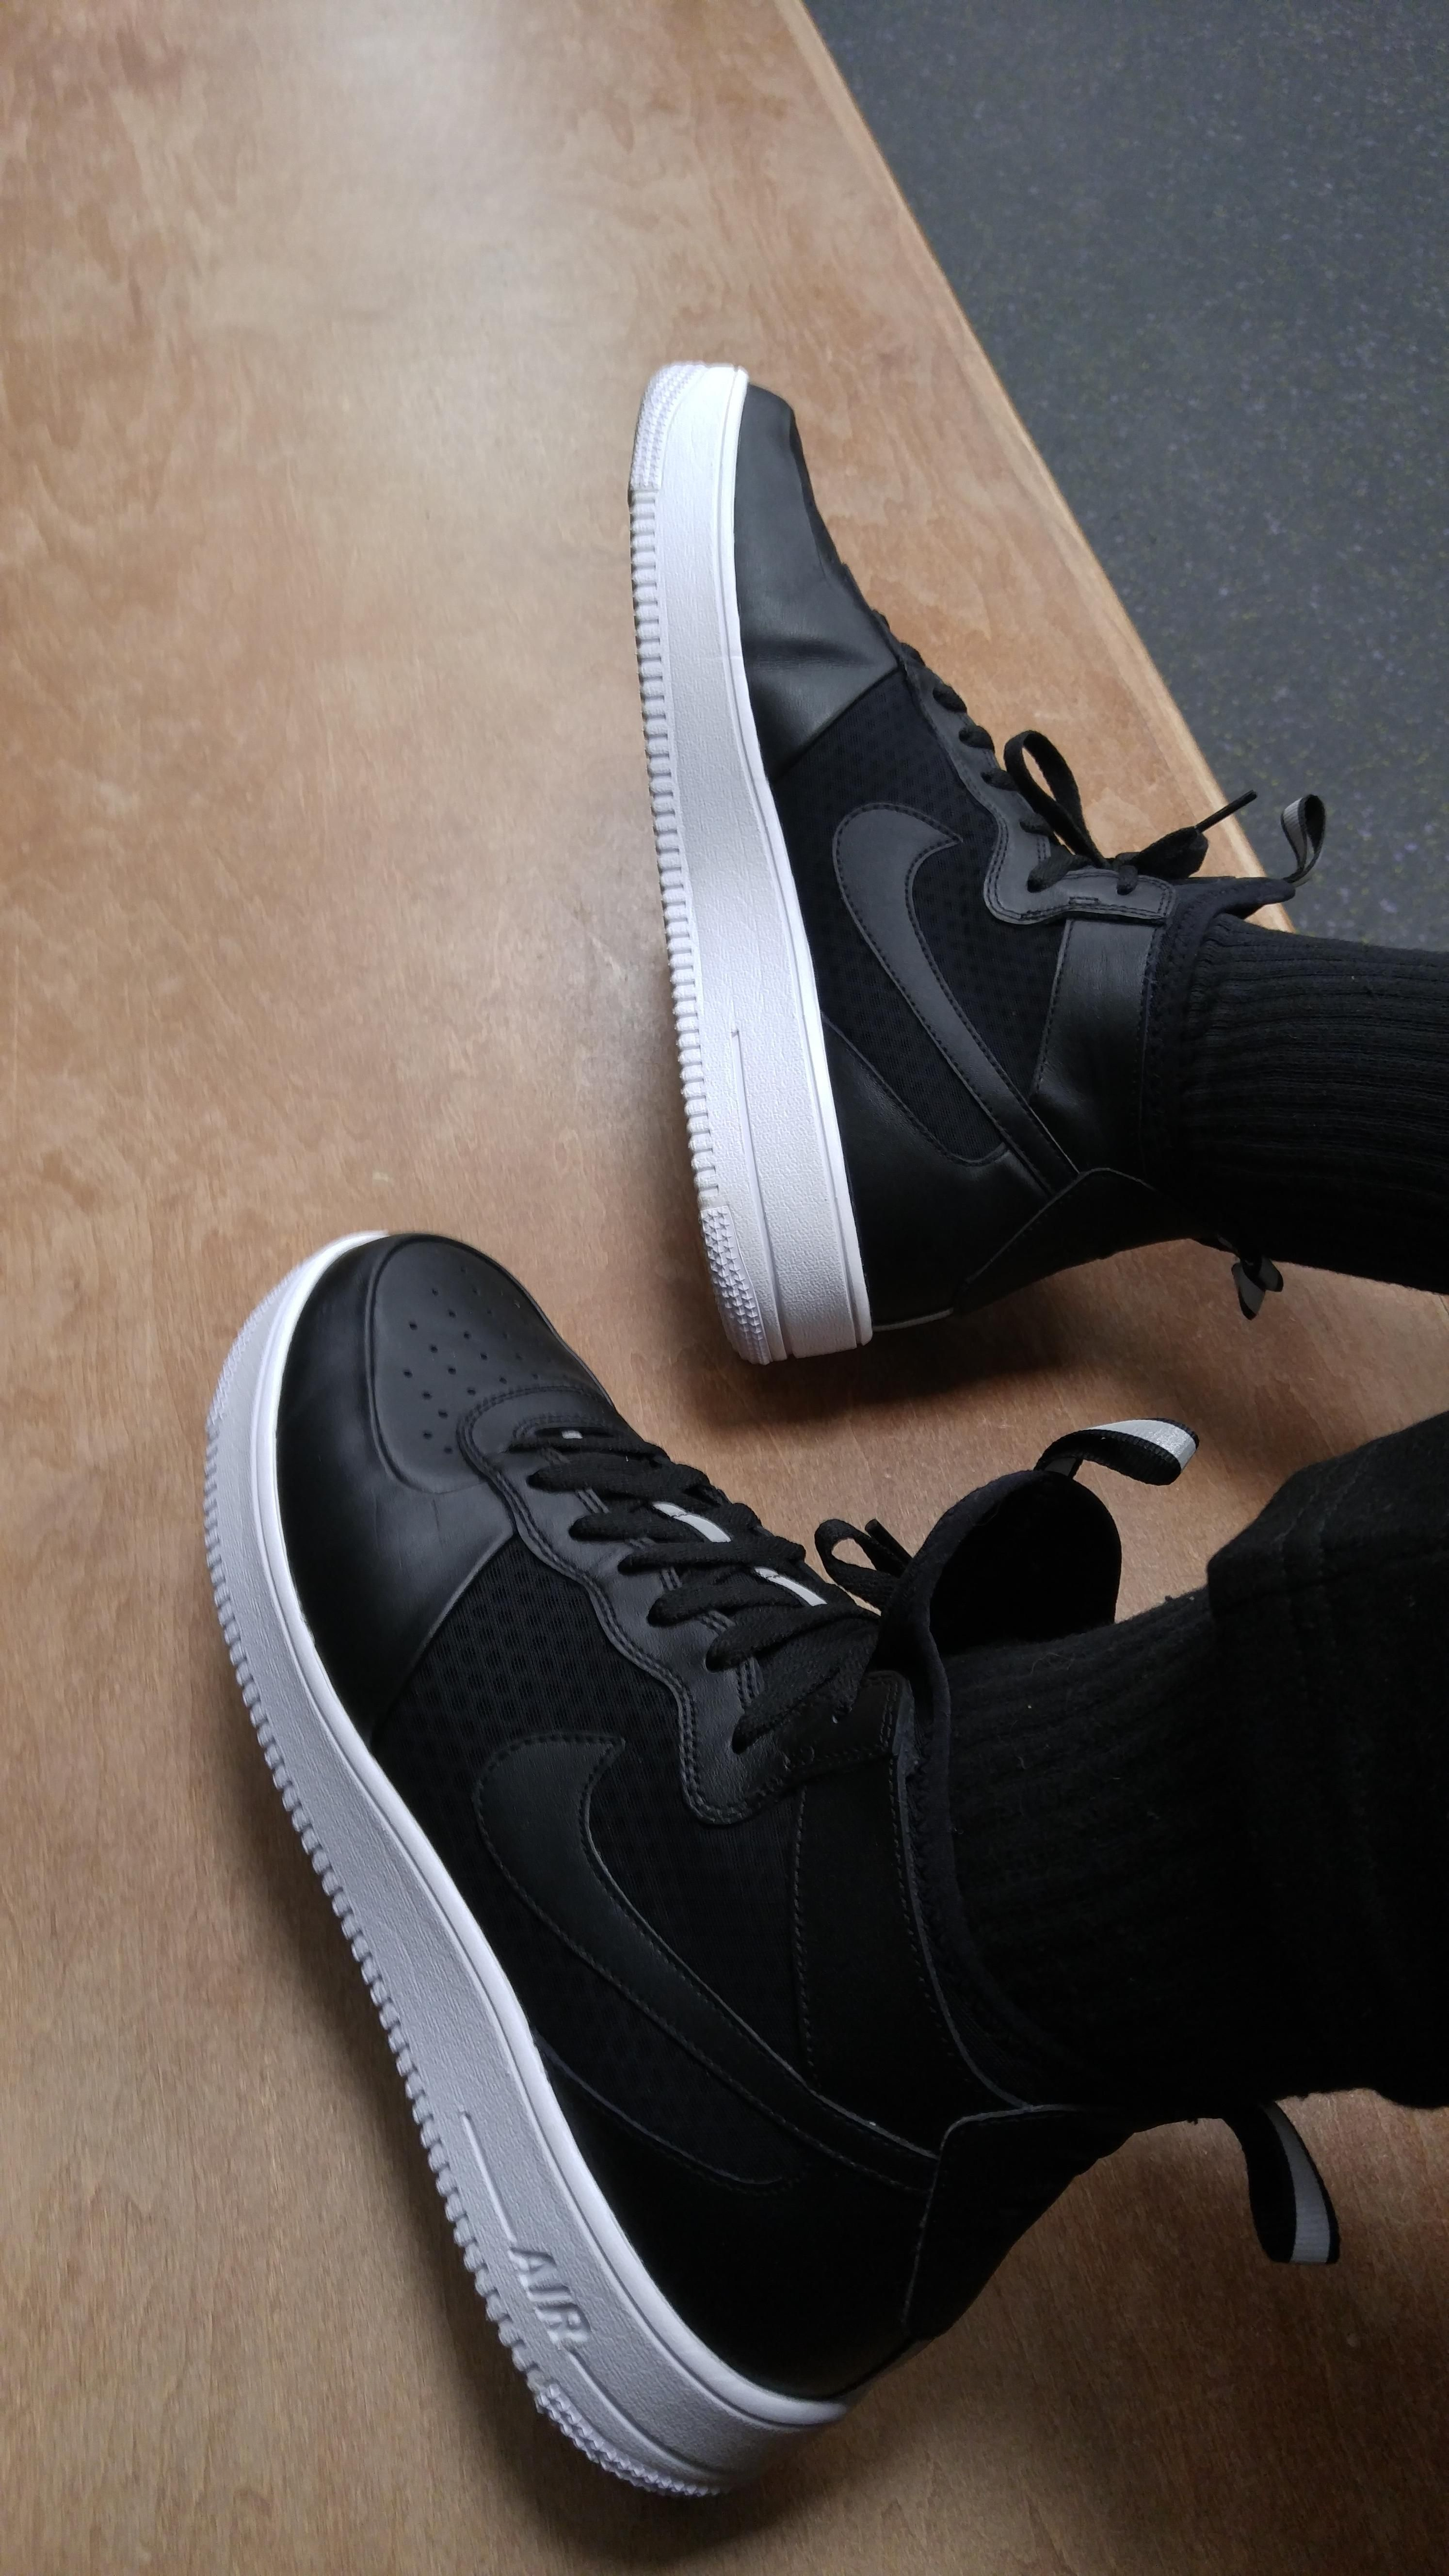 Ron Holt on in 2019 | Air force one shoes, Sneakers nike